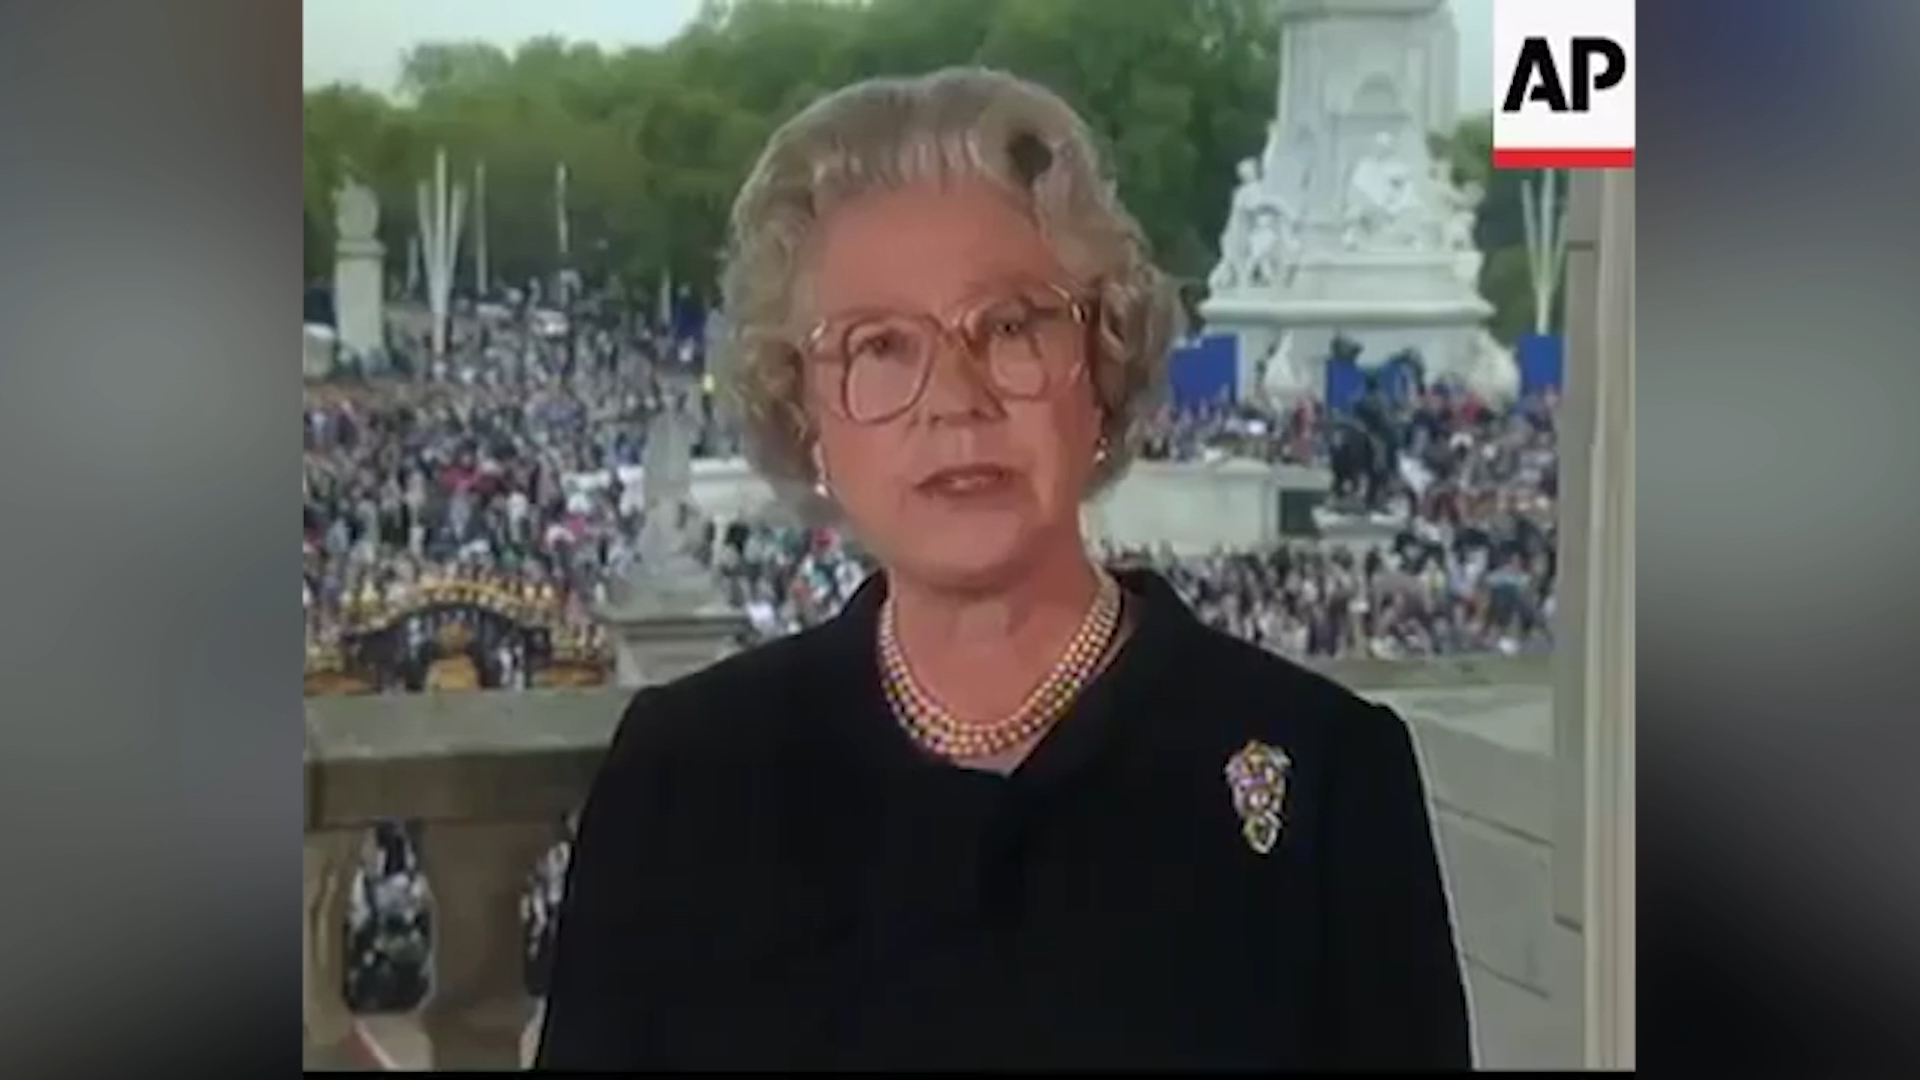 Queen Elizabeth's televised tribute to Princess Diana